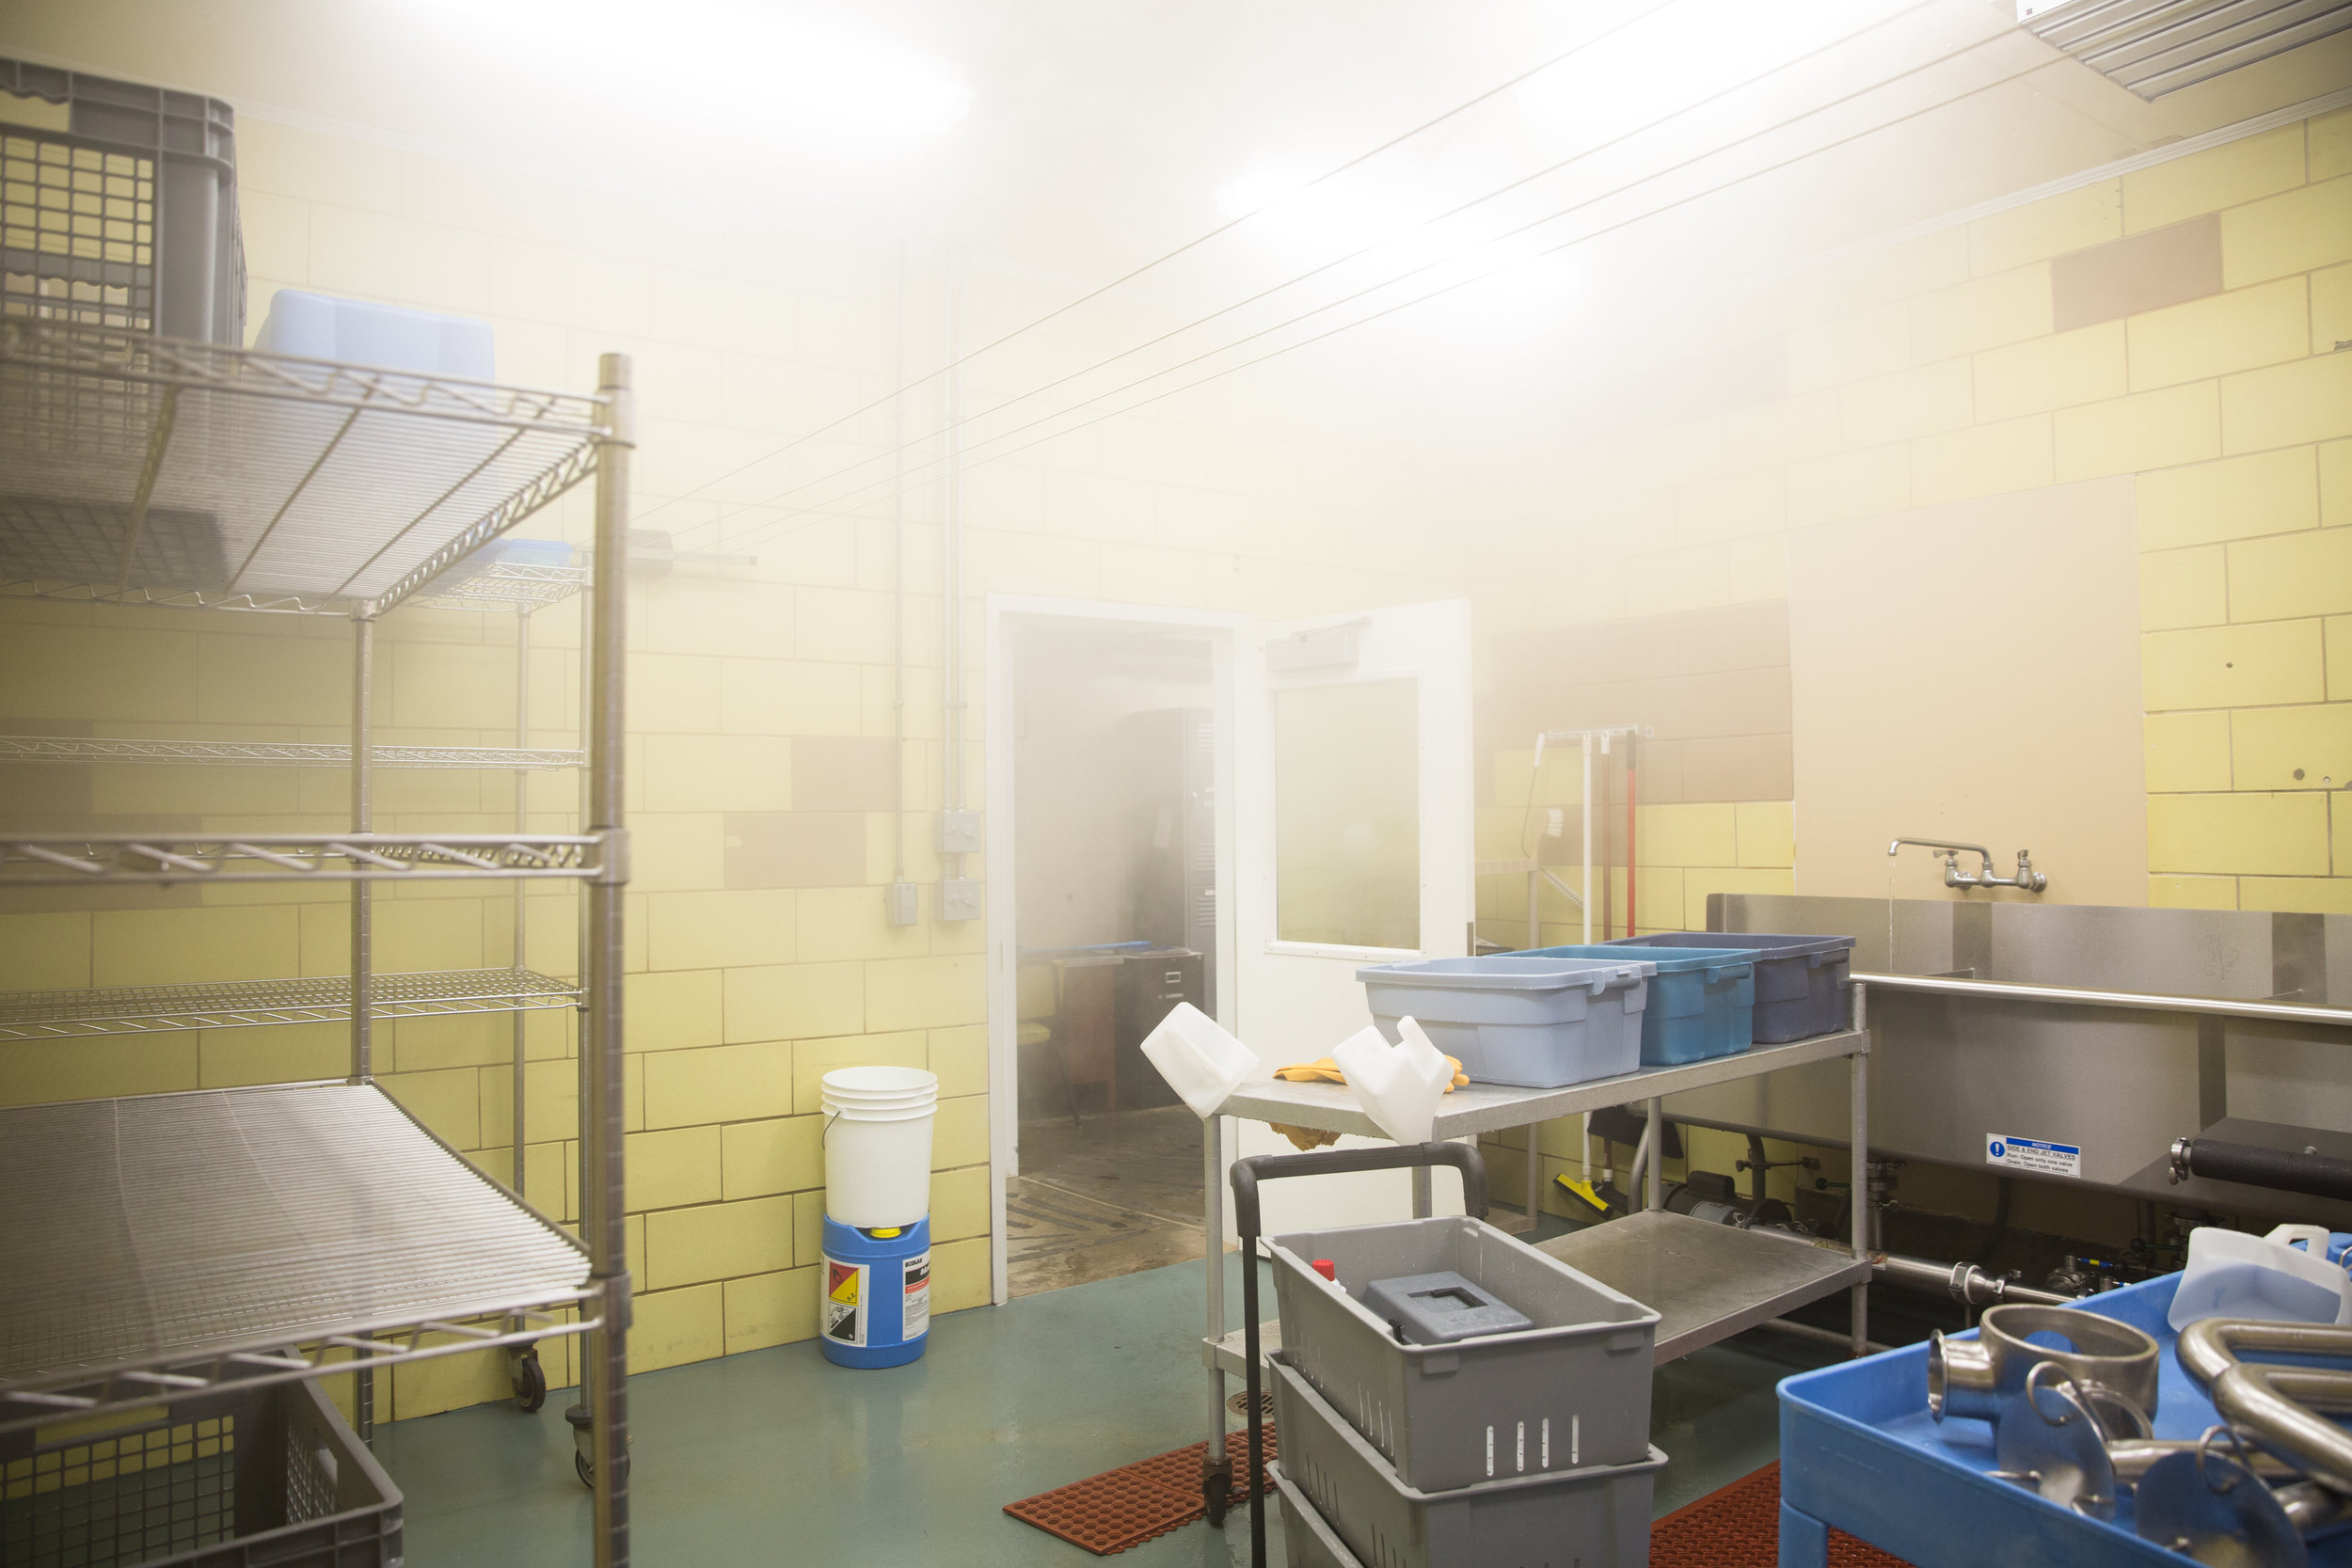 The wash room sits foggy on cheese making days. The cheese making process requires a moist environment.